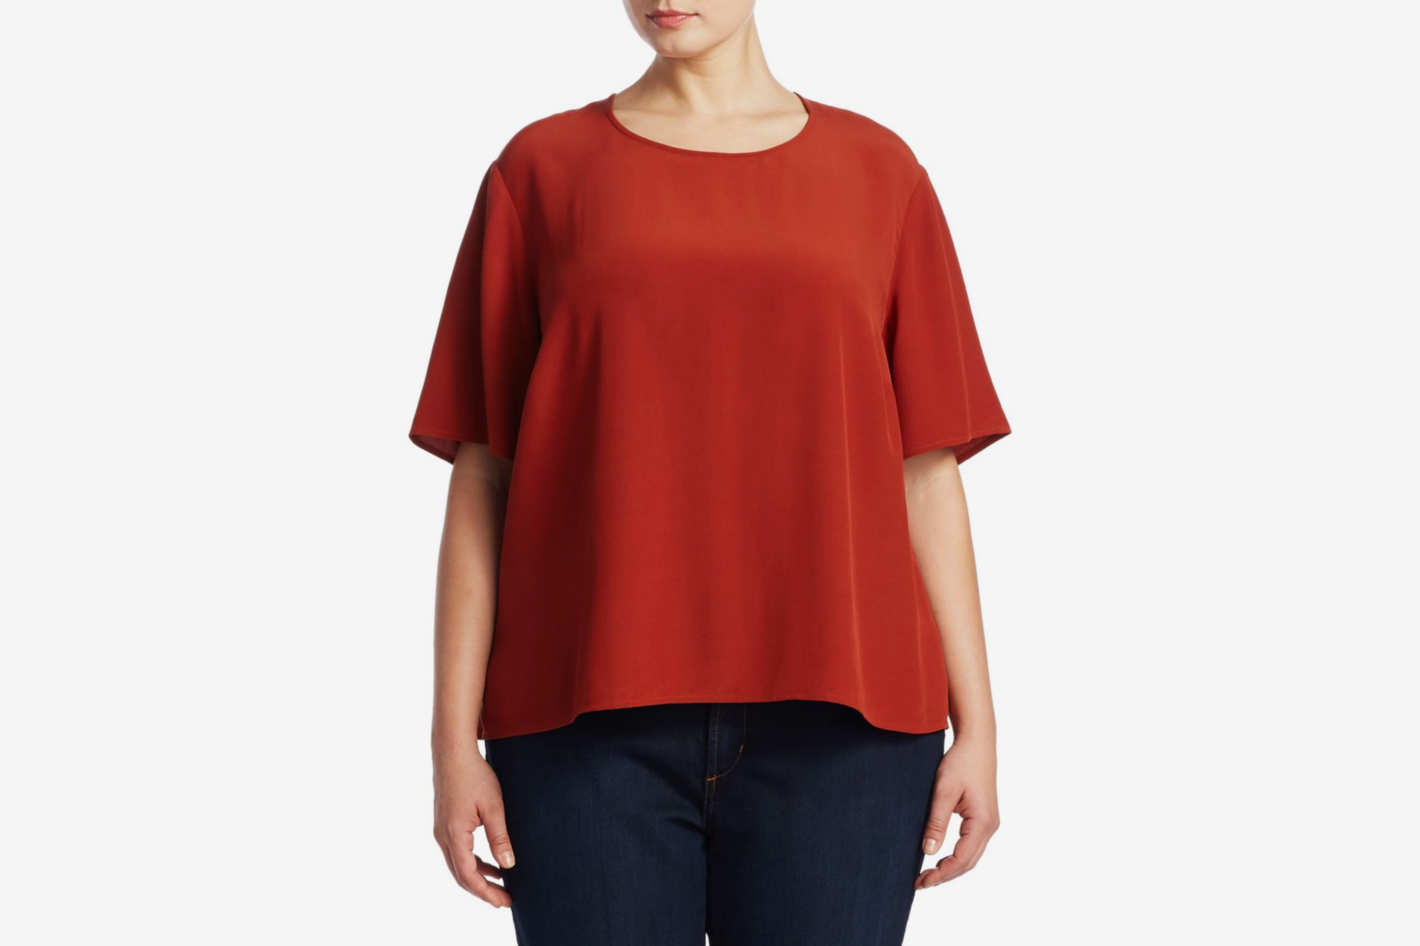 Eileen Fisher on Sale at Saks, Nordstrom, Neiman Marcus 2018